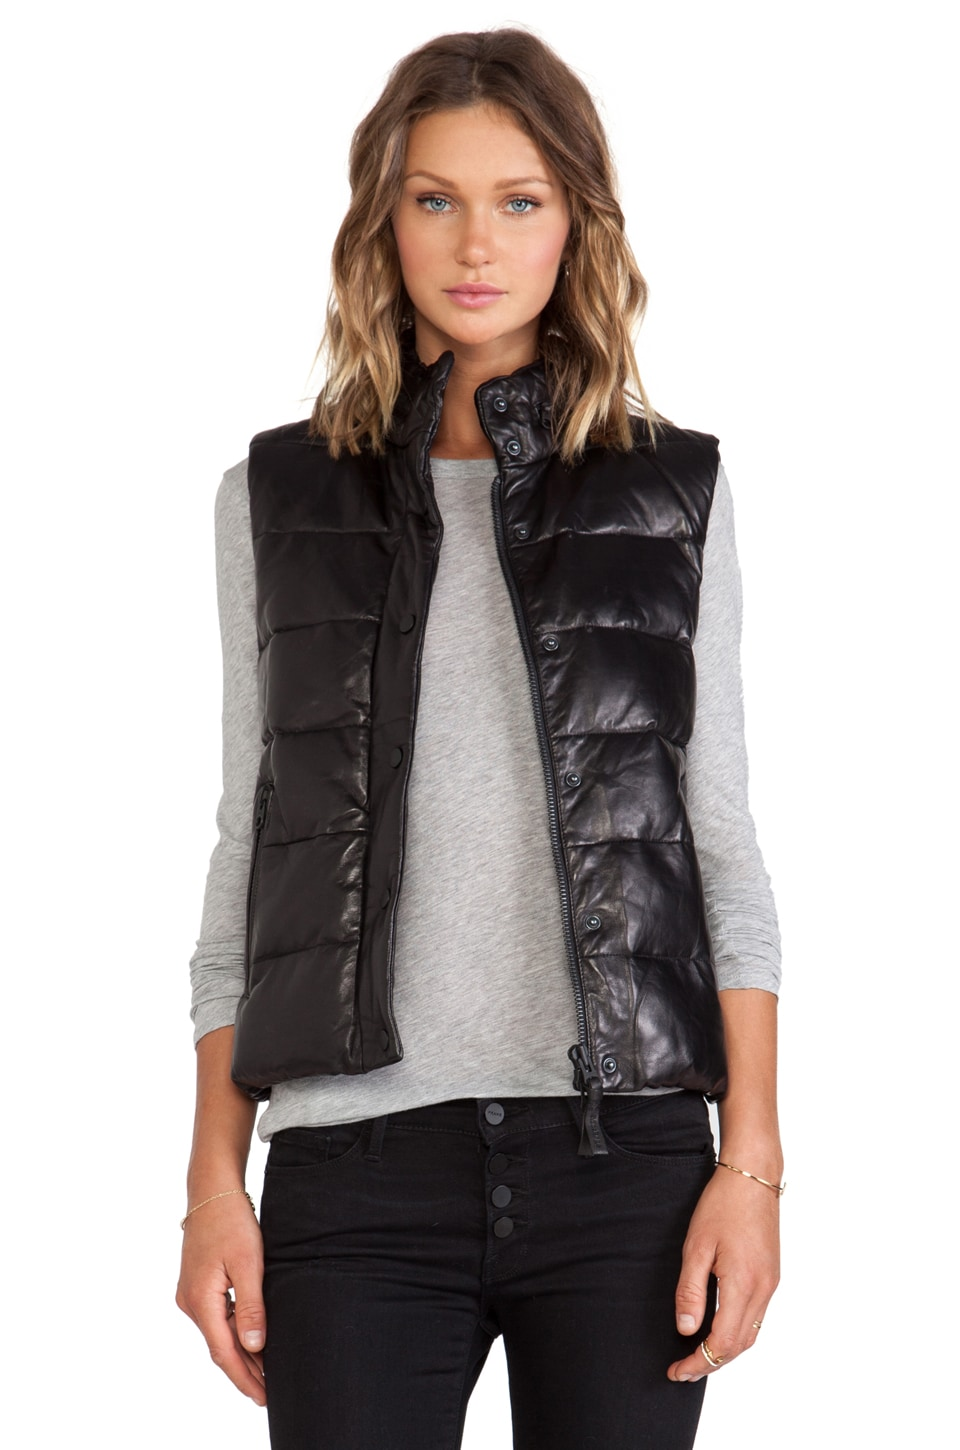 Mackage Gisa Vest in Black